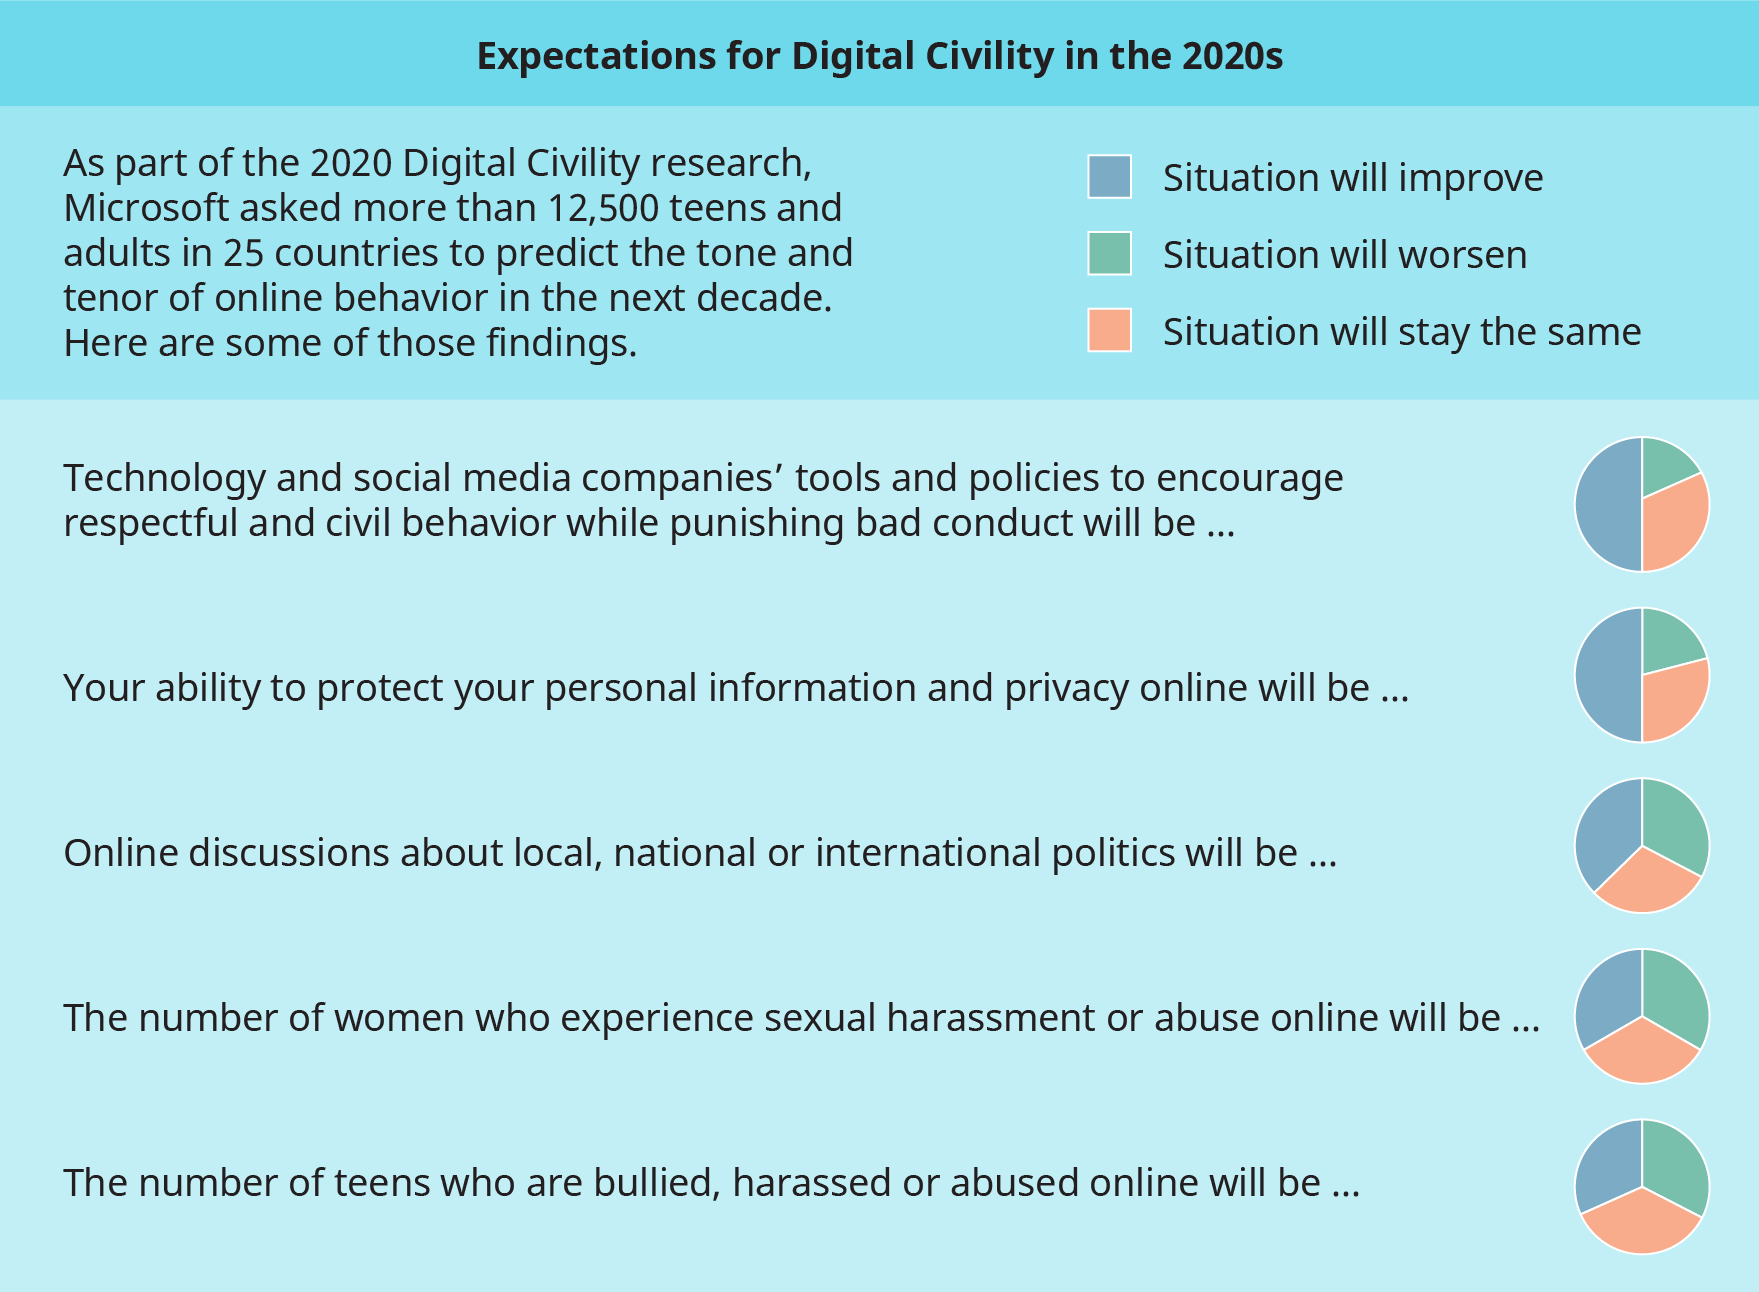 A chart illustrates the expectations for Digital Civility in the 2020s.